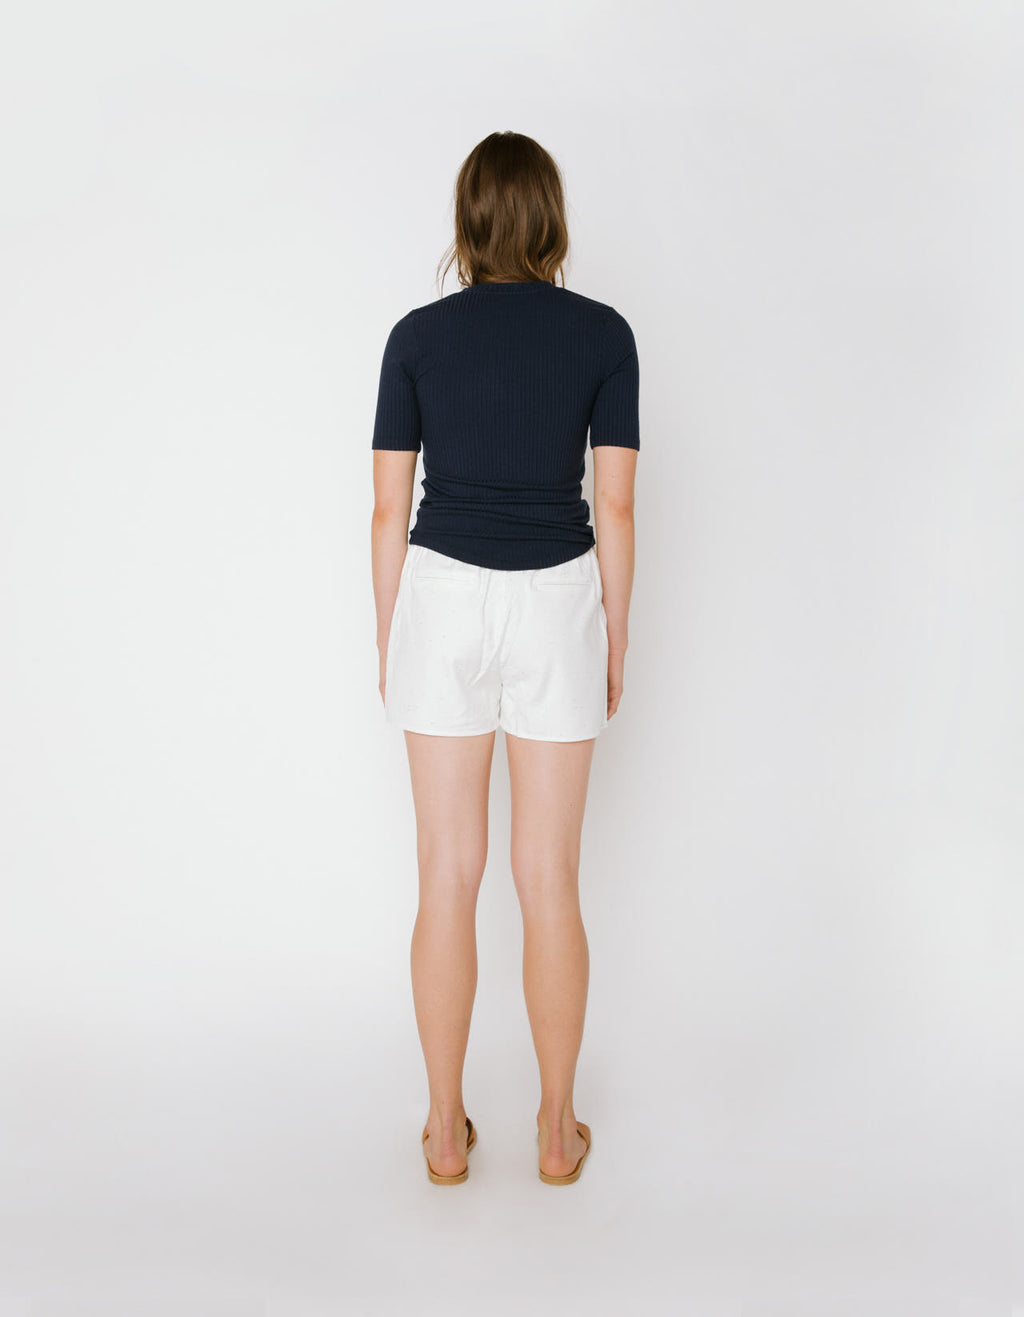 The Sabina Tee in Navy